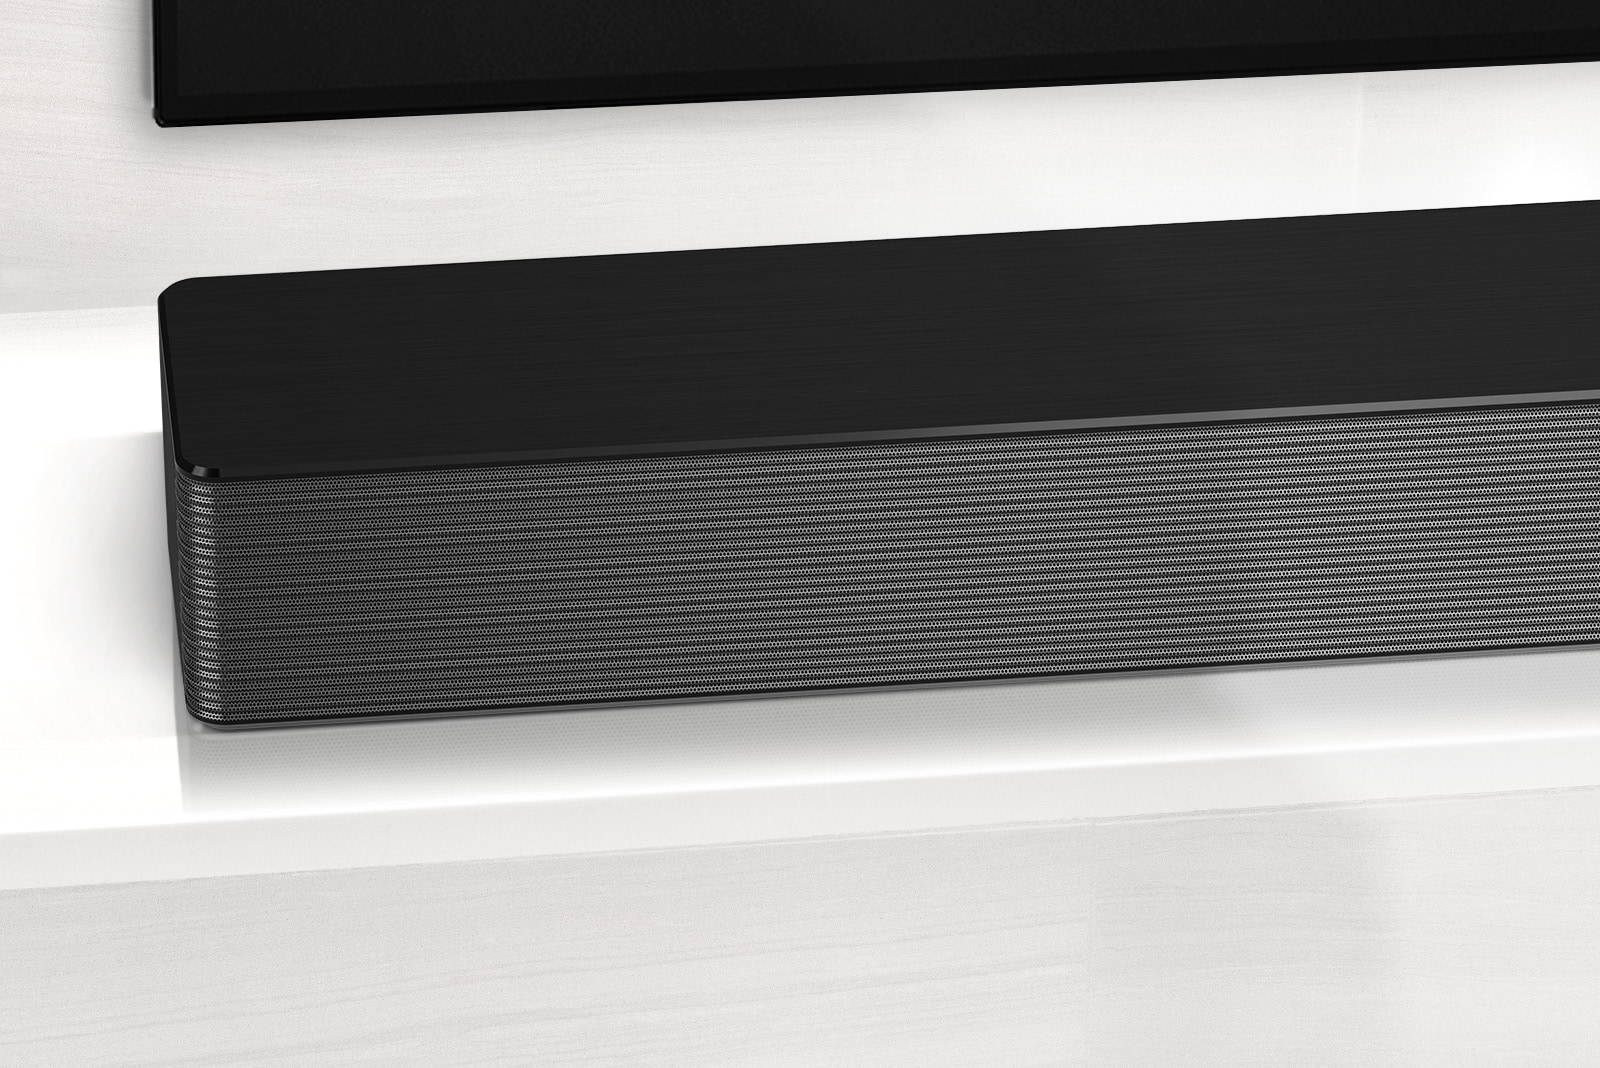 Close-up of LG Soundbar left corner. Bottom left side of TV is also visible.